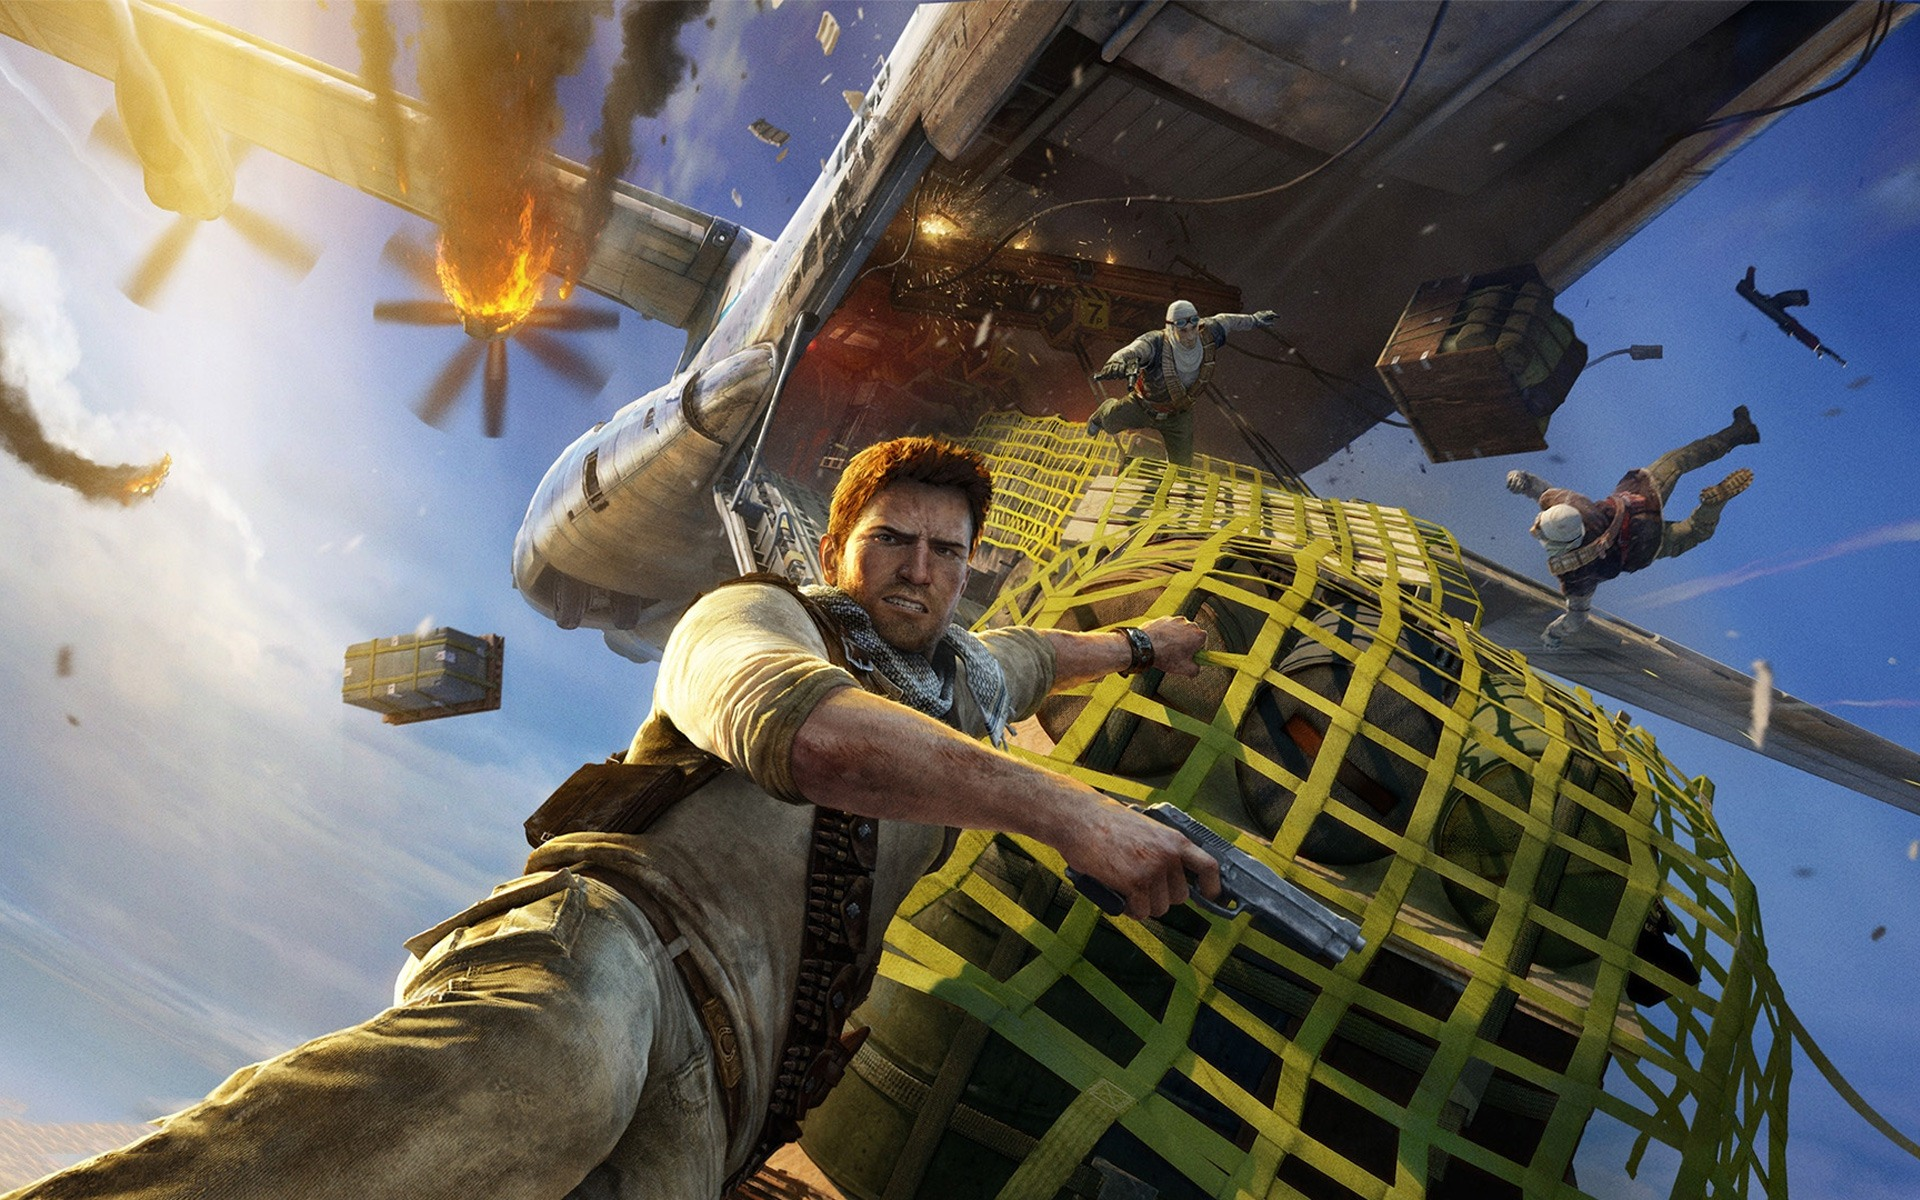 Uncharted 3 Drakes Deception Hd Wallpapers 12 1920x1200